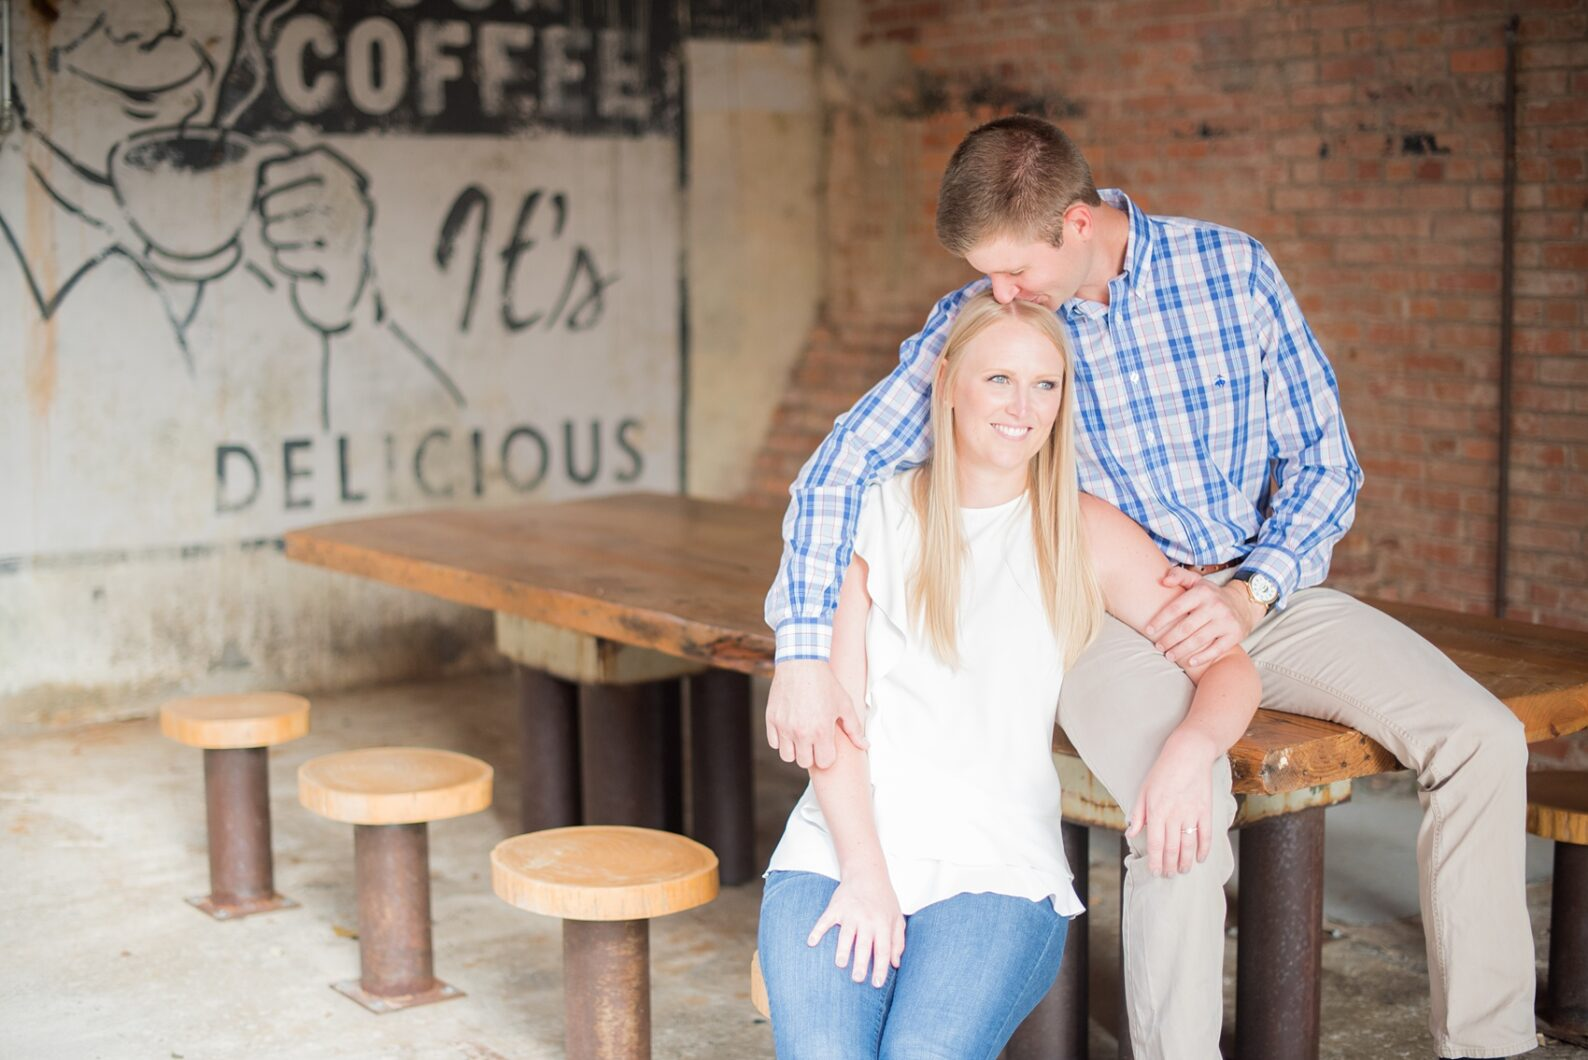 Mikkel Paige Photography photos from an engagement session at Durham's American Tobacco Campus in North Carolina.